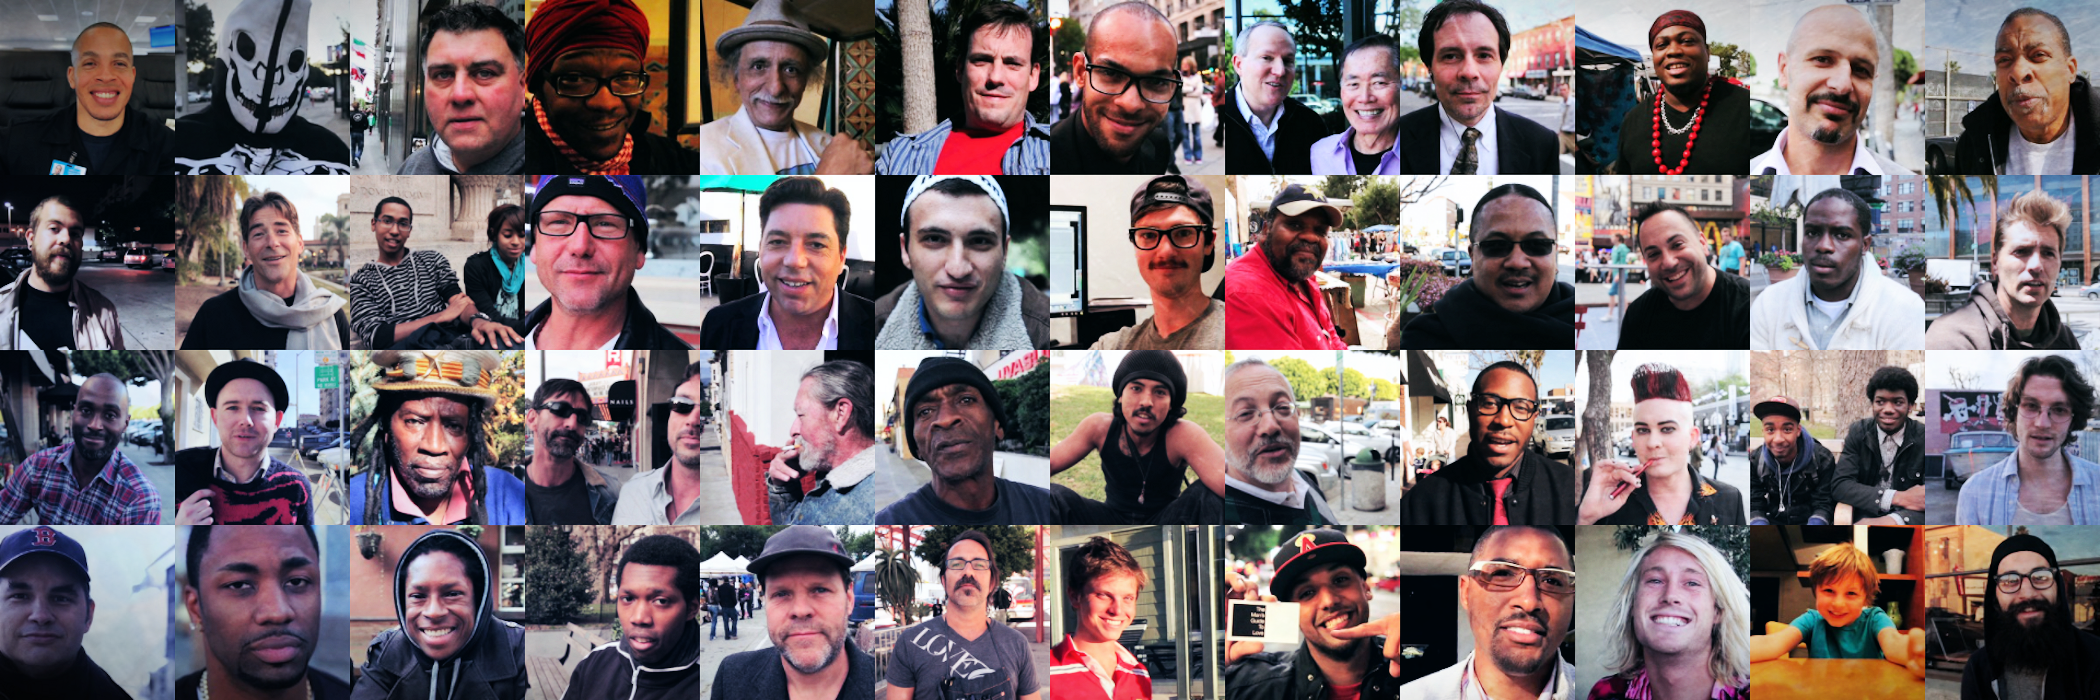 Many male faces in a four-by-twelve grid. Original edit of the website - The Man's Guide To Love.